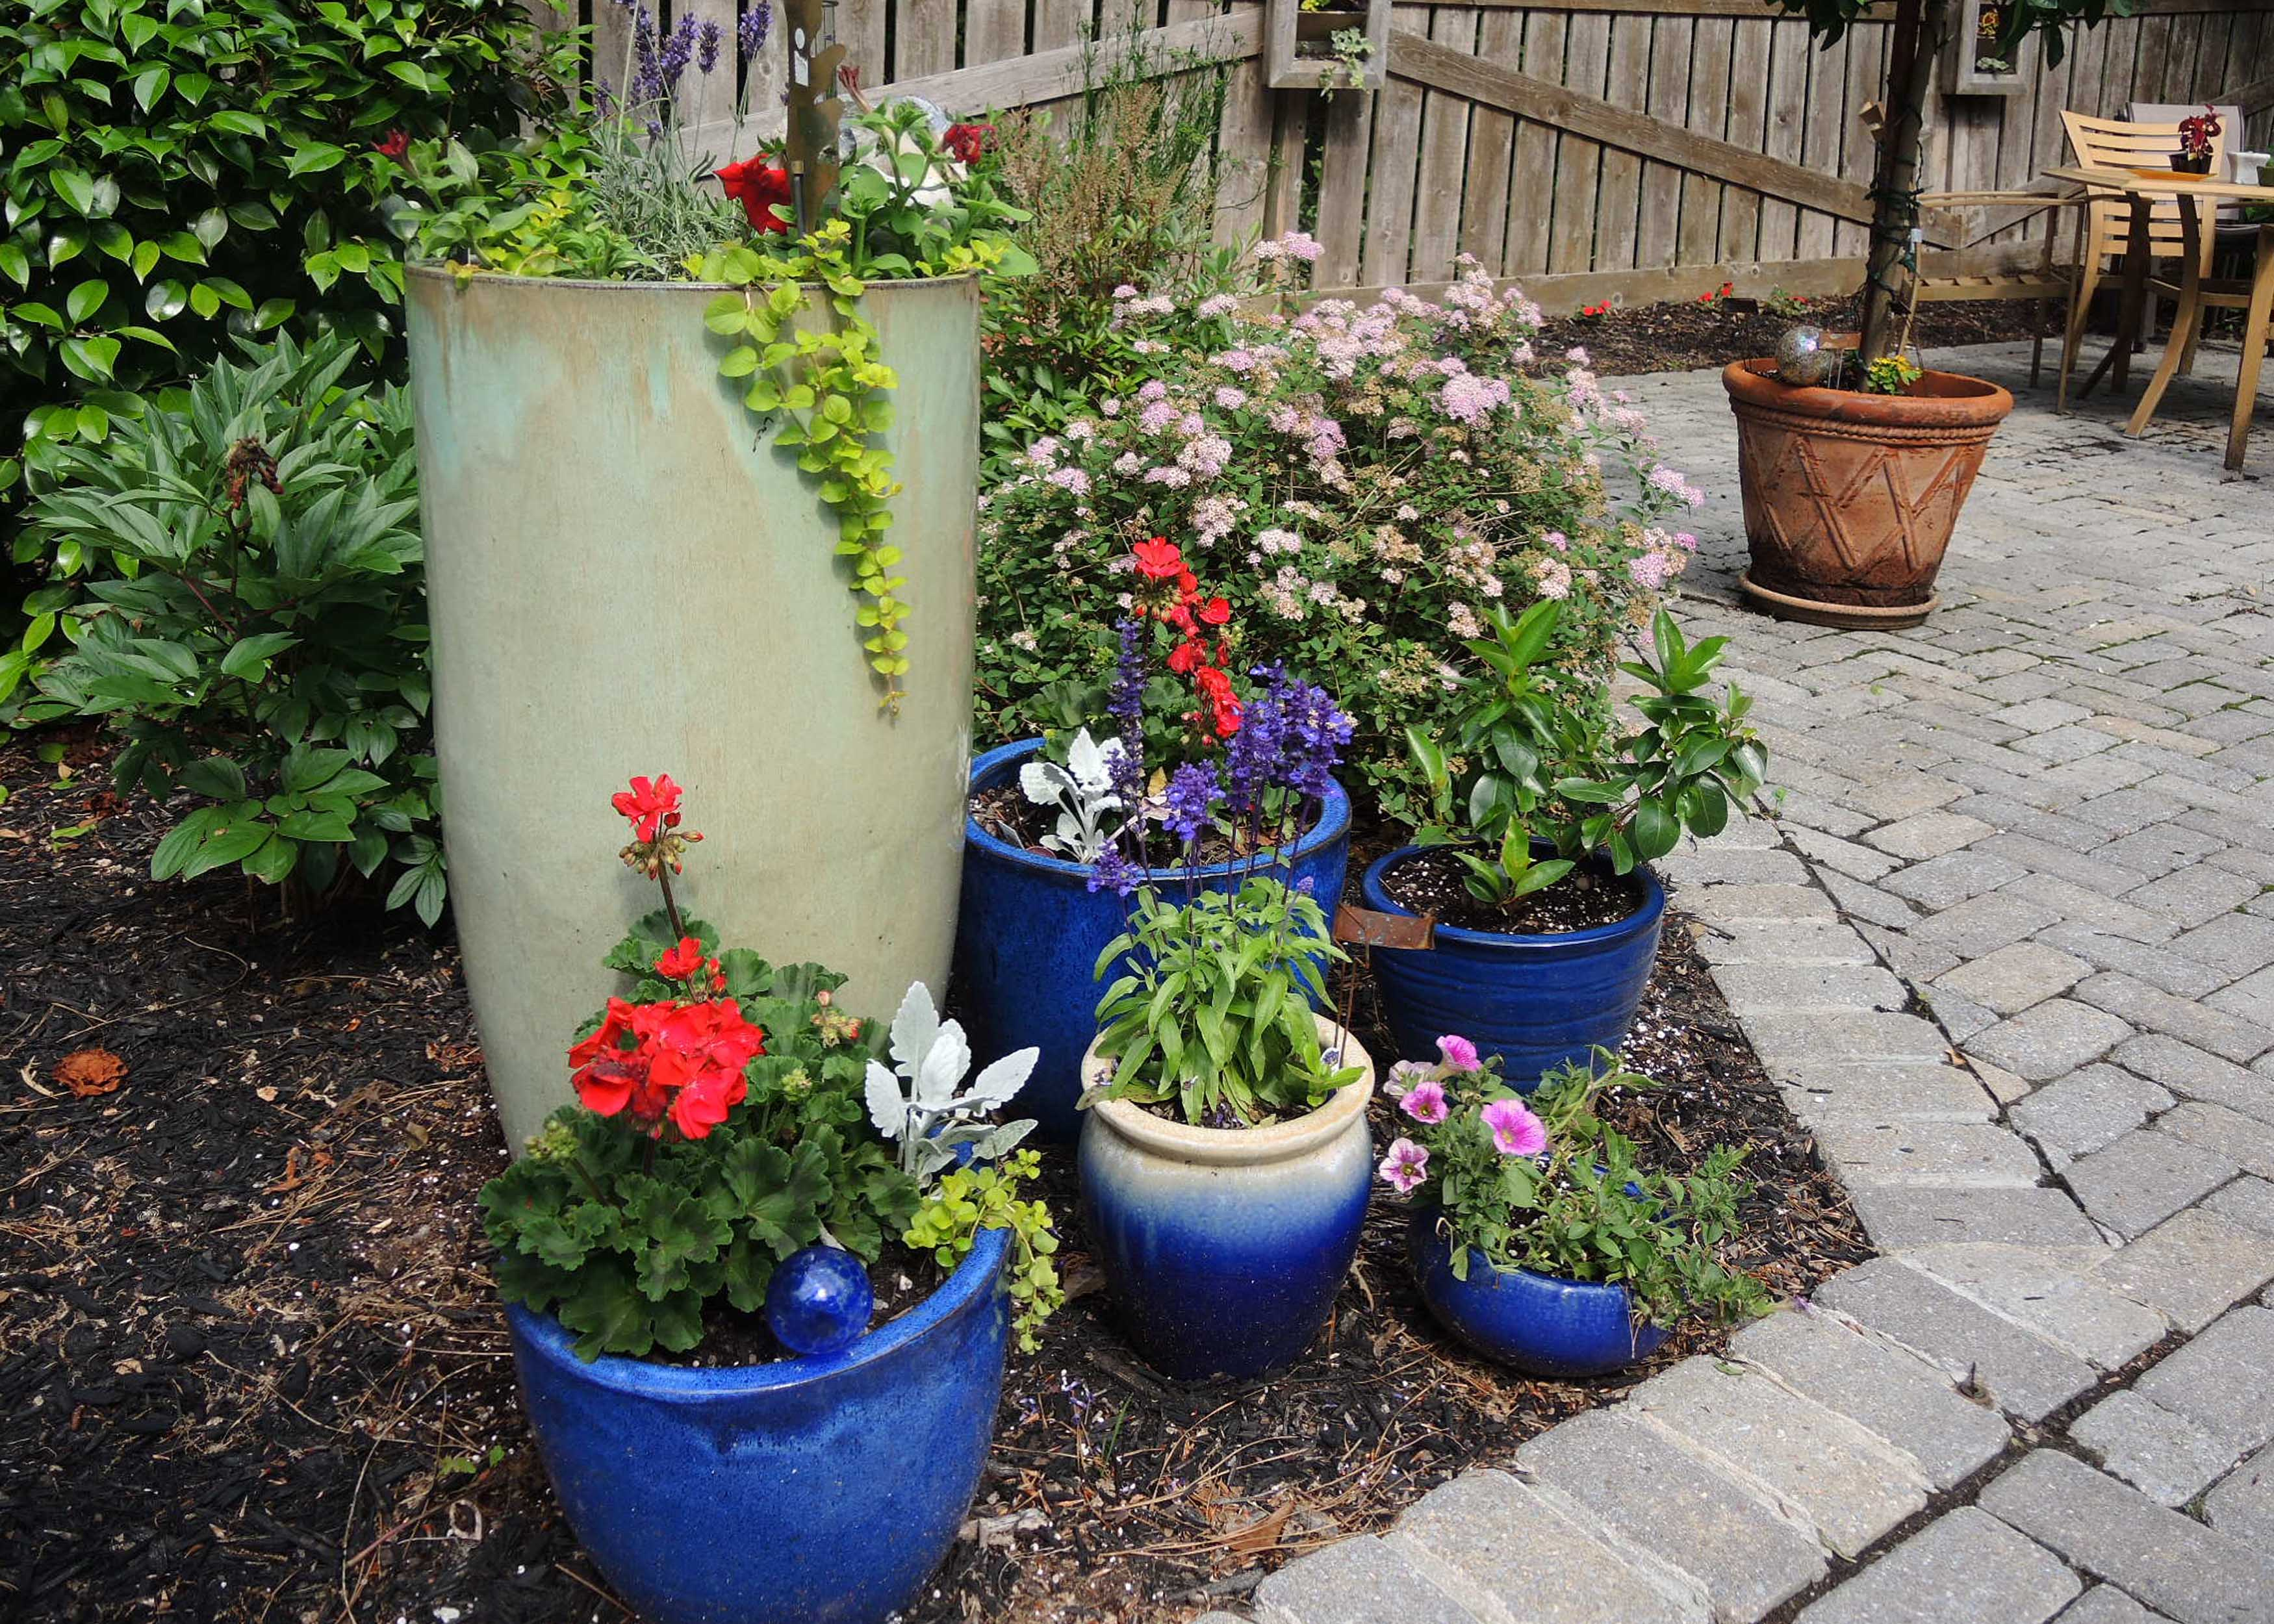 DSCN0179 - collection of flower planters.jpg